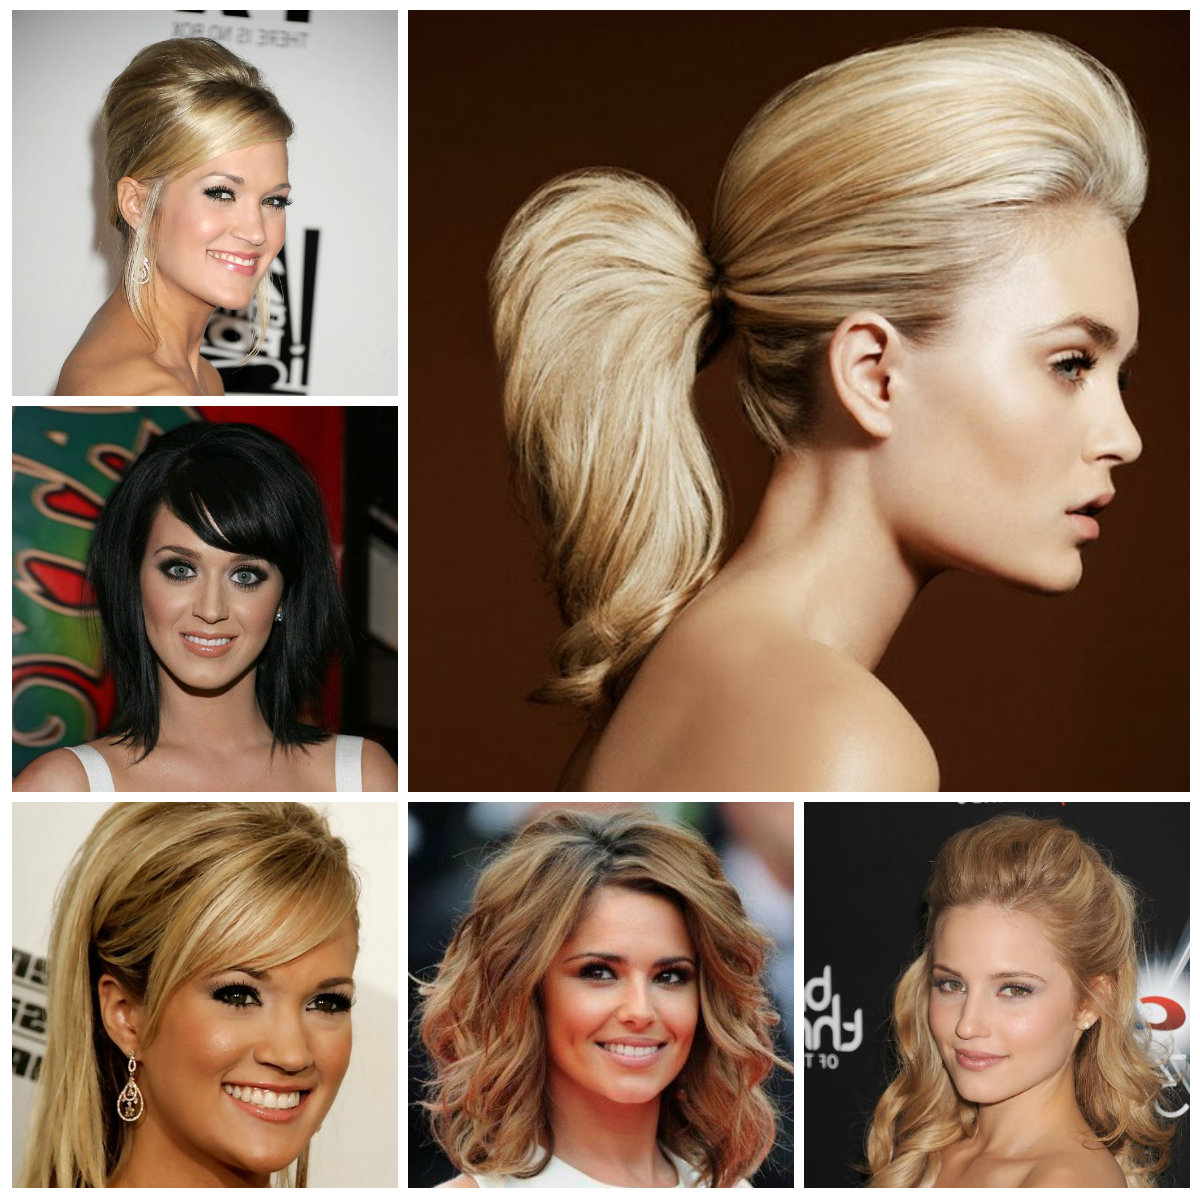 Here's Why You Should Attend Teased Hairstyles | Teased Hairstyles Regarding Teased Short Hairstyles (View 9 of 25)